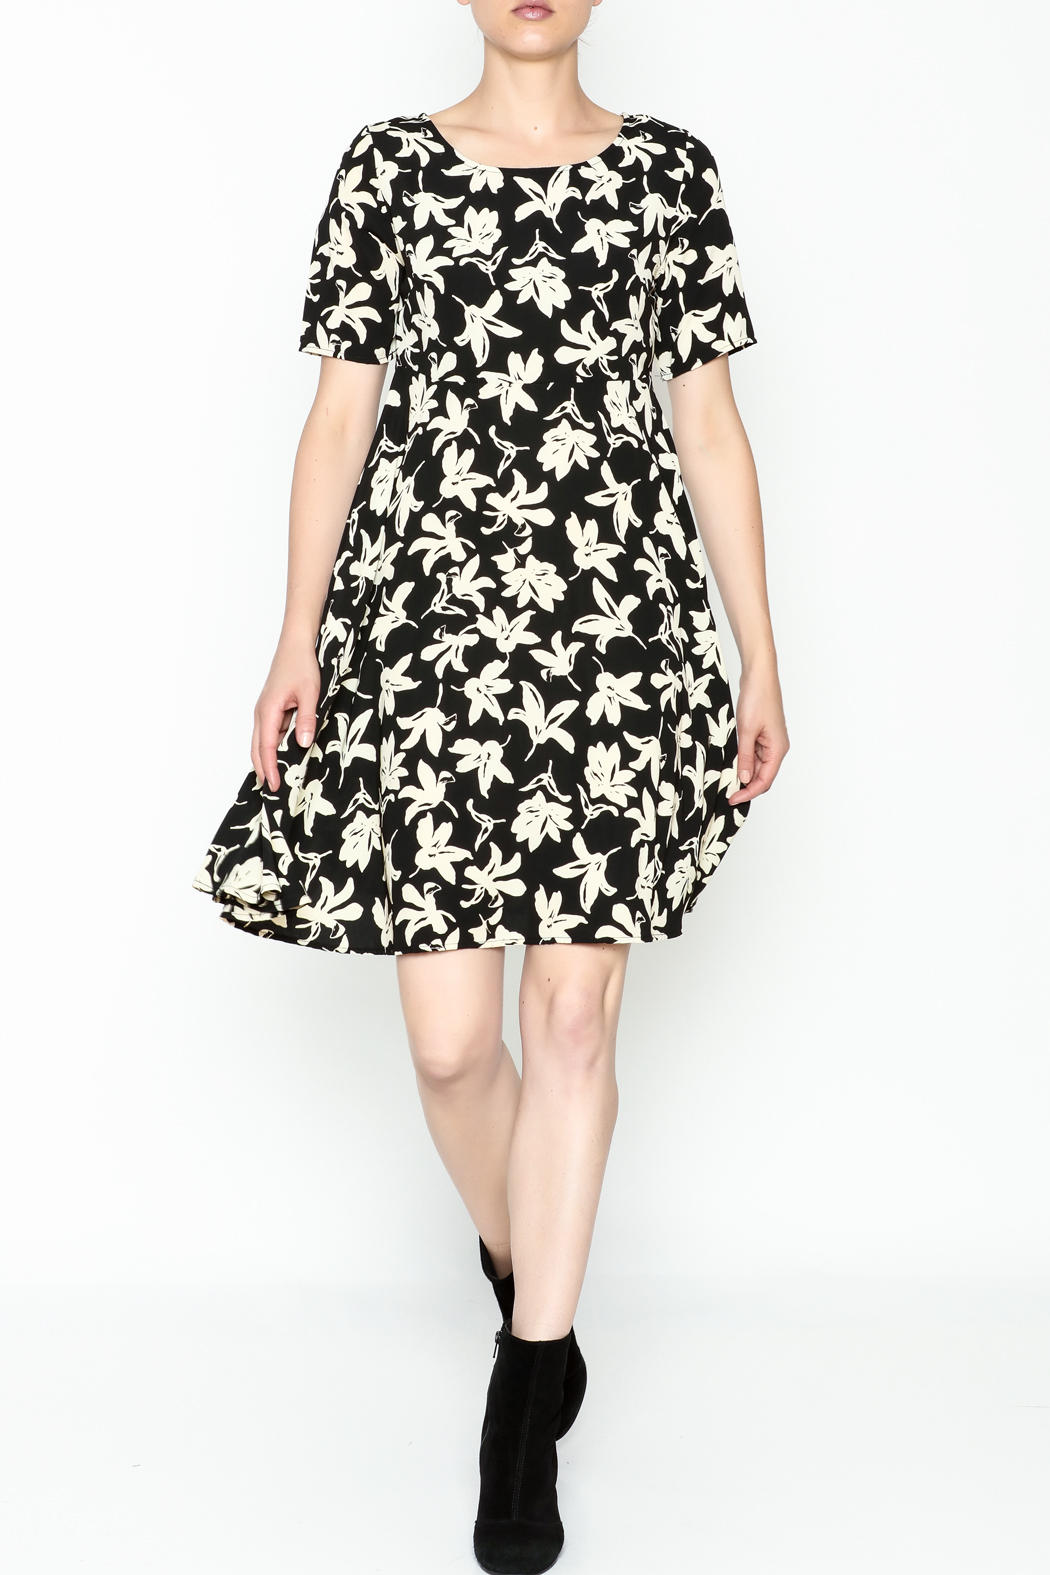 Everly Terri Floral Shift Dress - Side Cropped Image